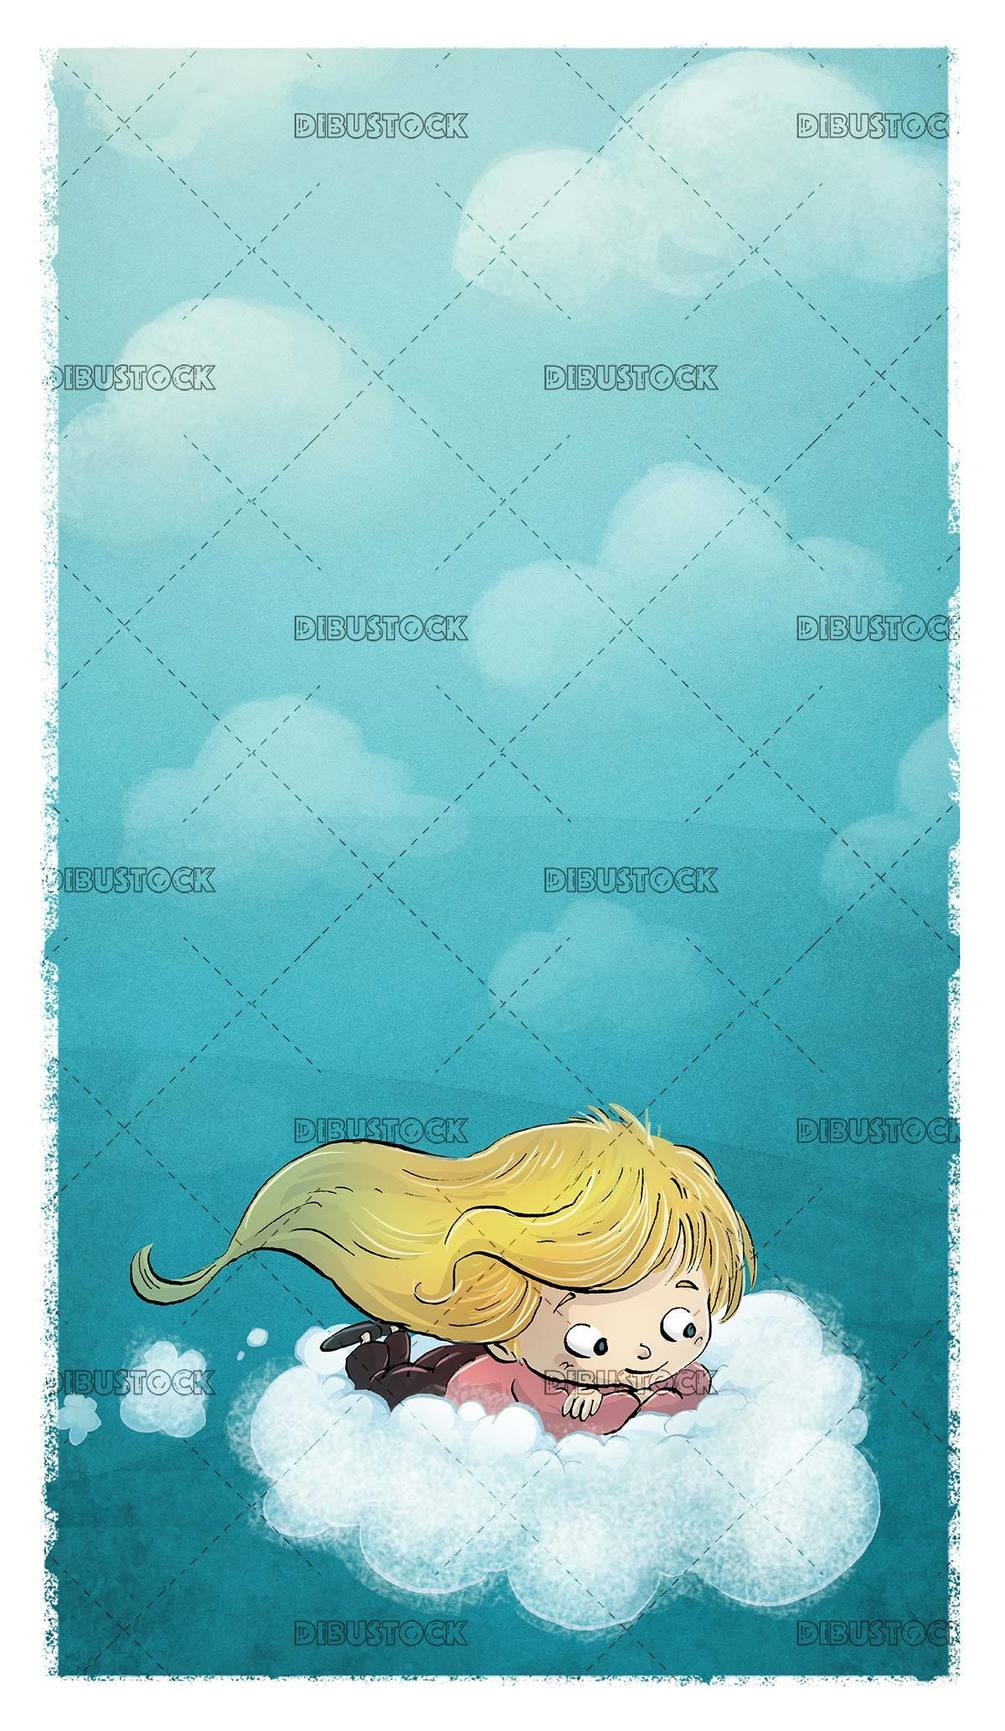 small girl flying on a cloud with blue background